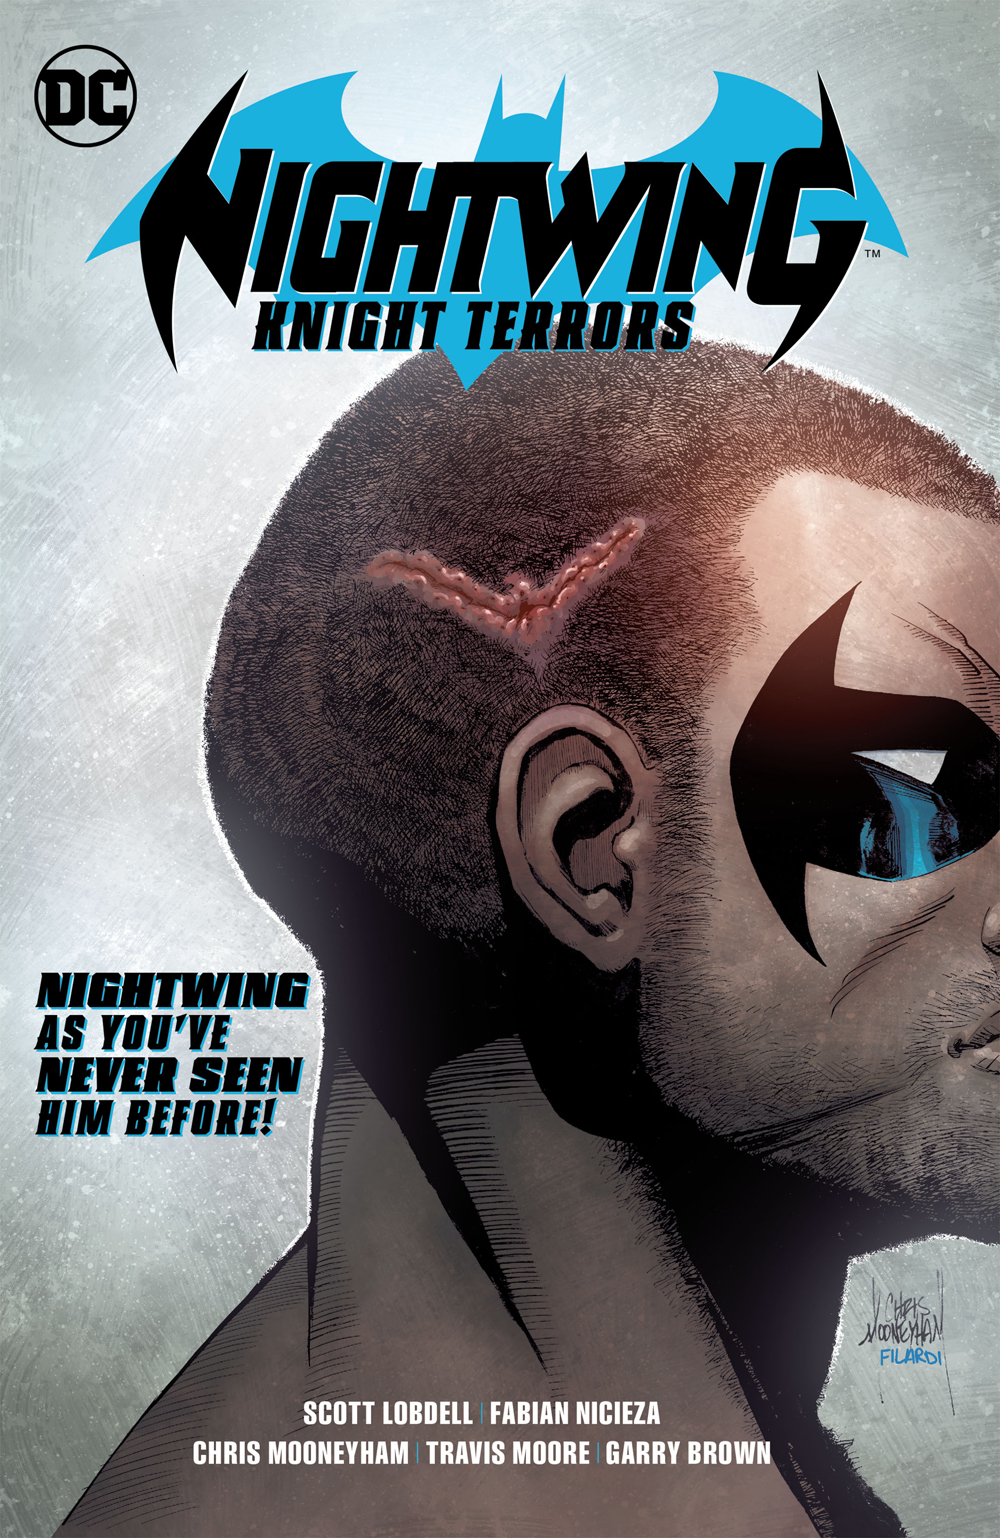 NIGHTWING KNIGHT TERRORS TP